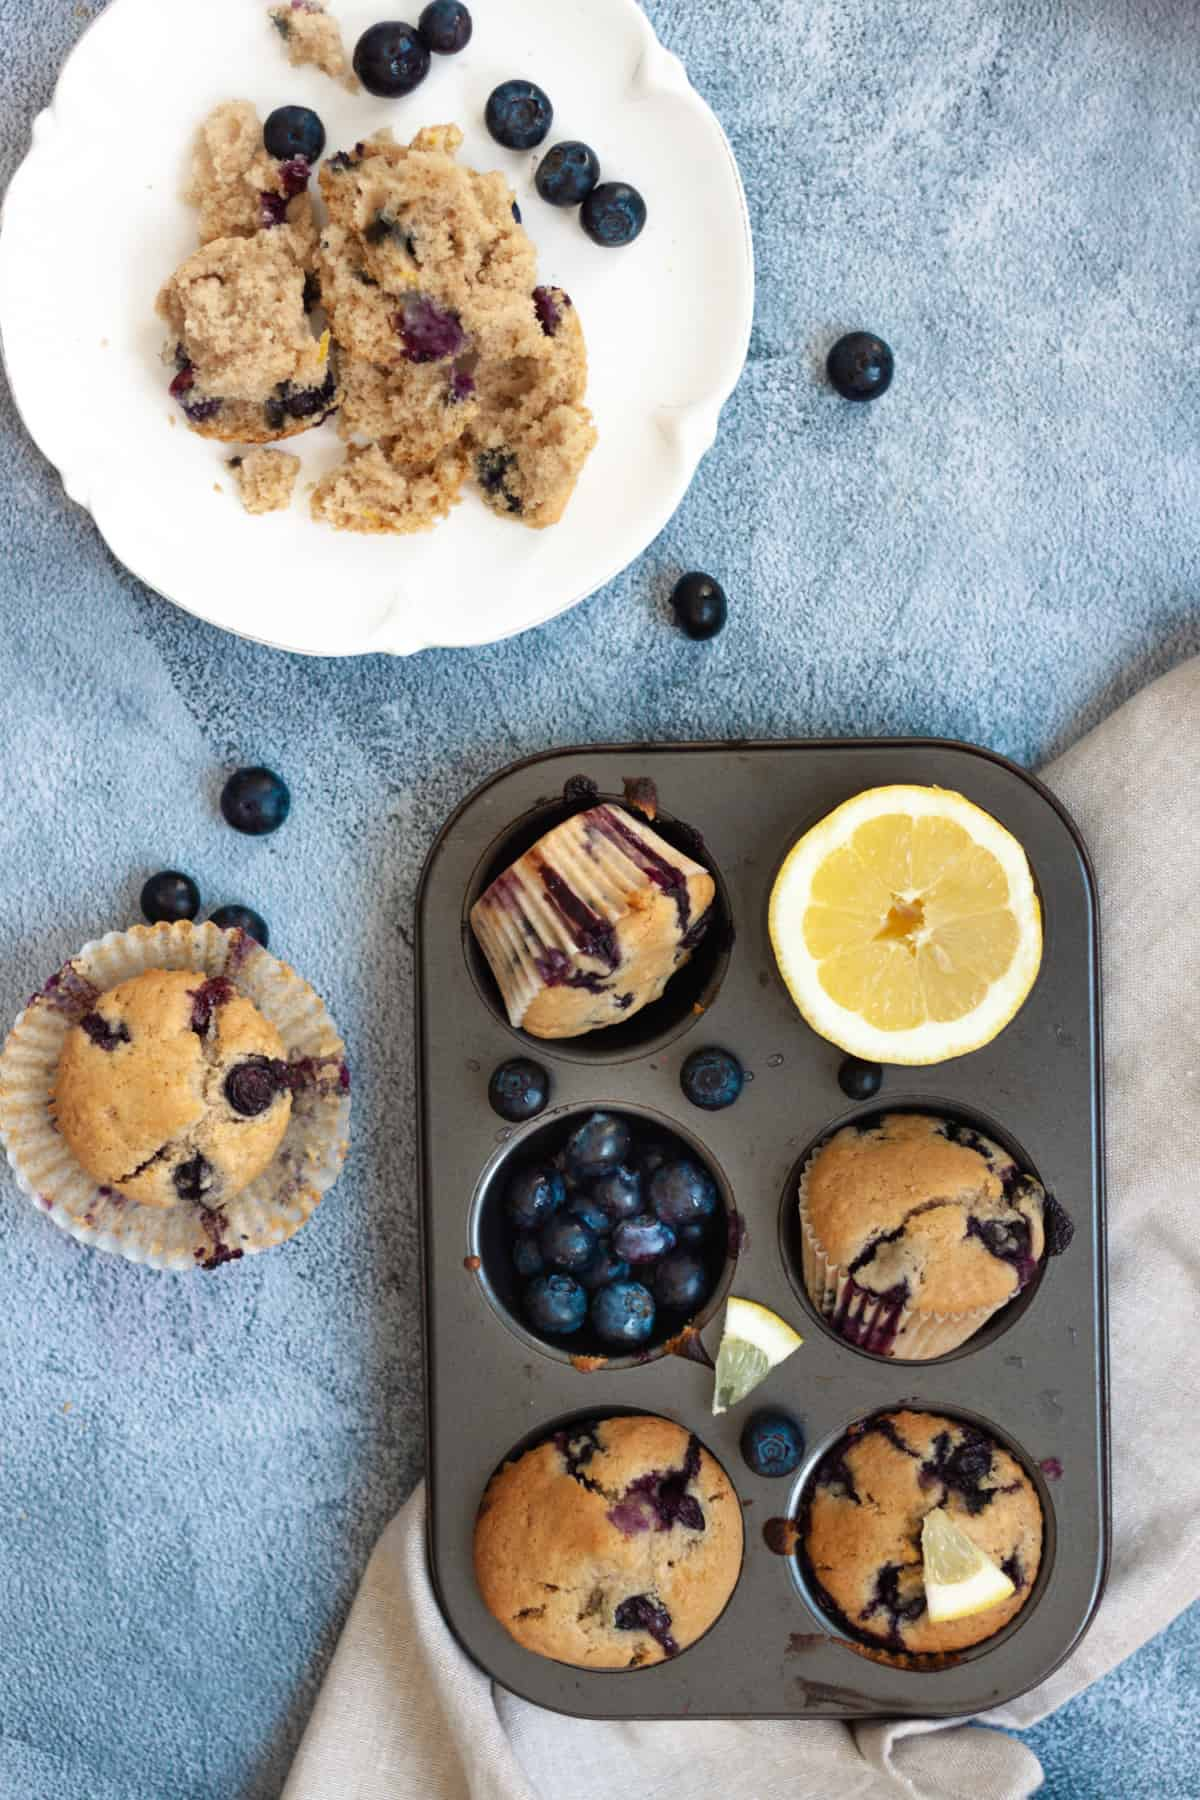 vegan blueberry lemon muffins in muffin tray with lemon and fresh blueberries